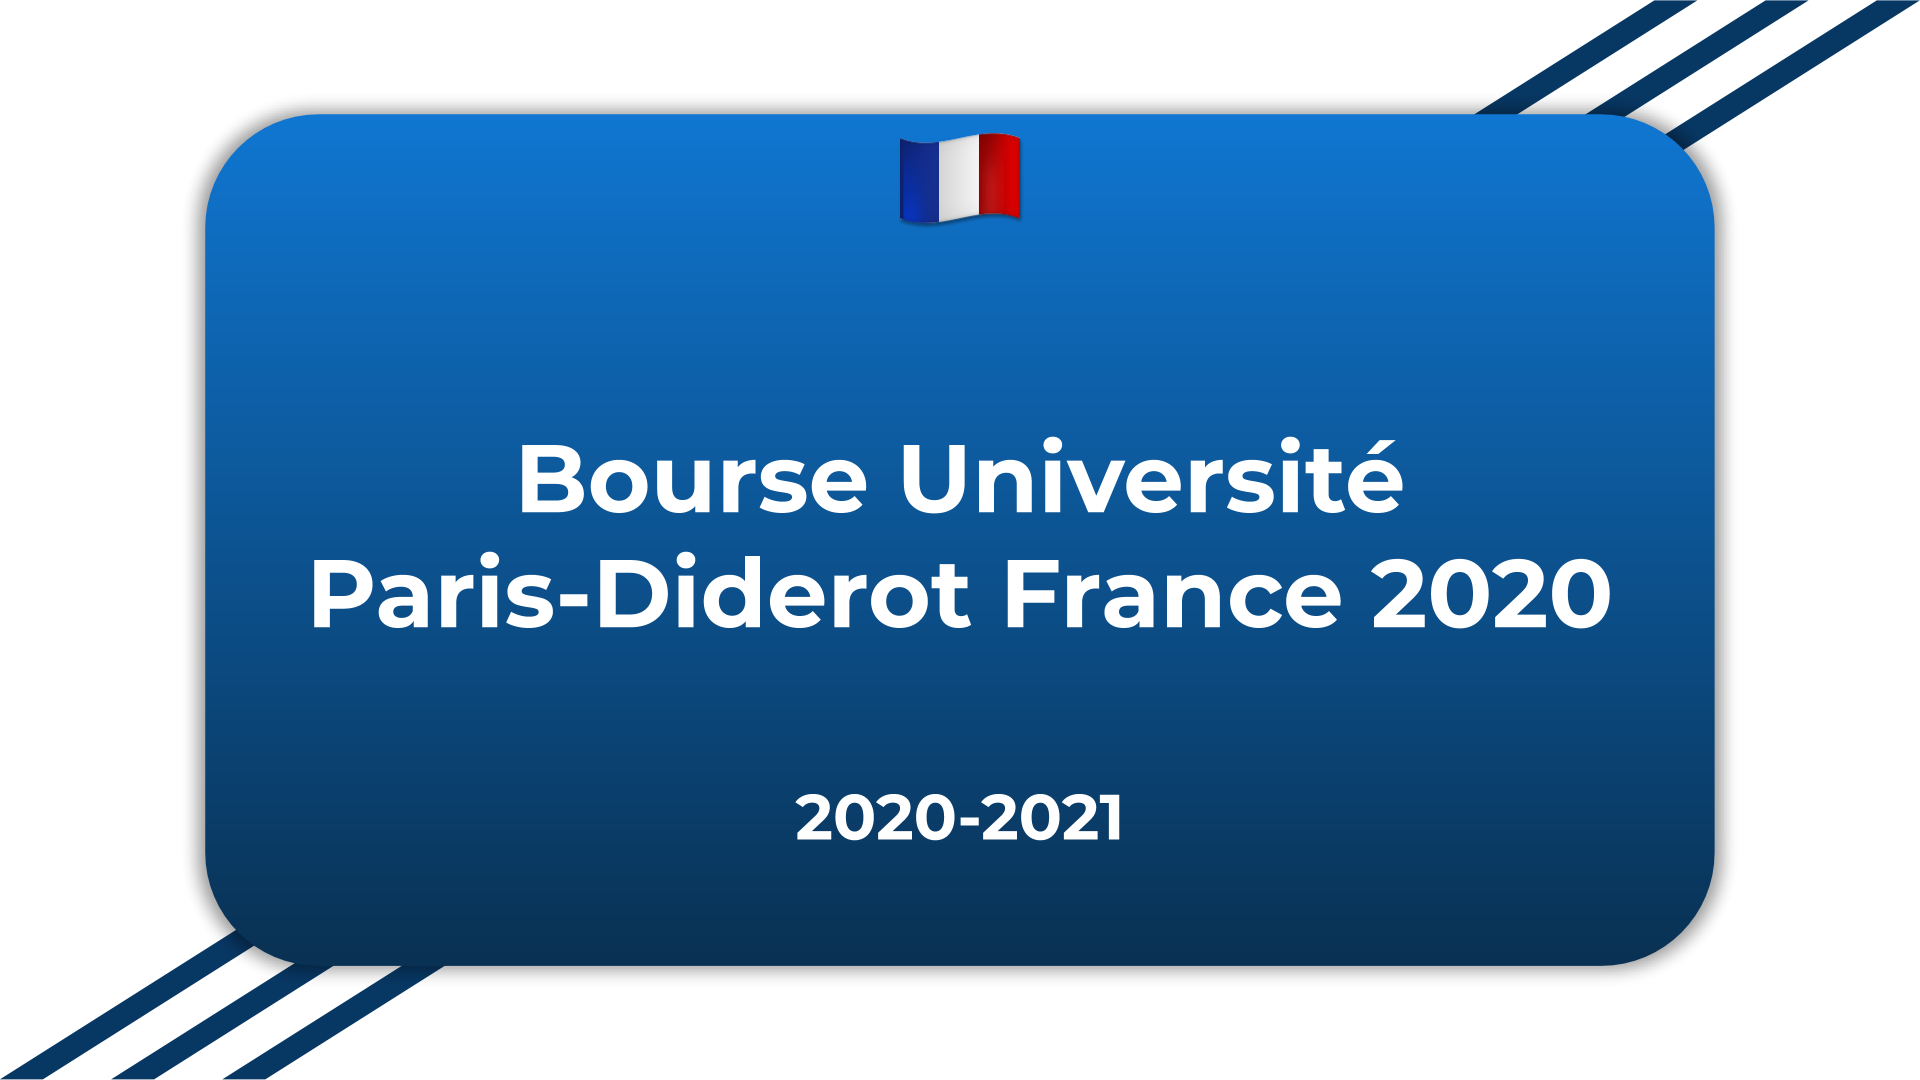 Bourse Université Paris-Diderot France 2020